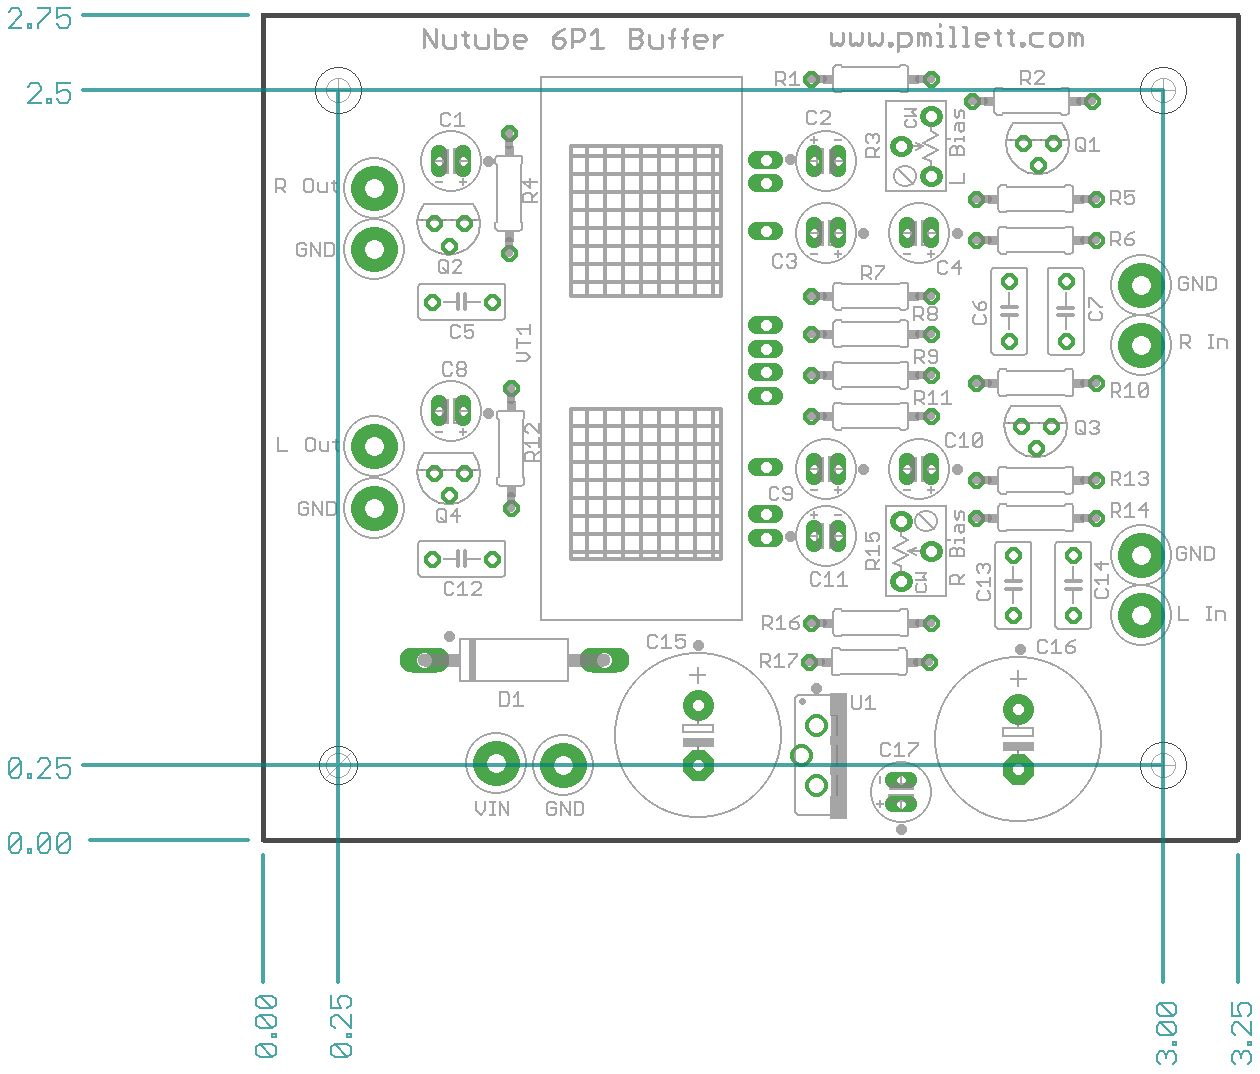 Nutube 6p1 Buffer Pcb Simple Audio Preamplifier Circuit Using Single Transistor 2n3904 The Idea Here Is To Implement A Stage Amplifier So People Can Evaluate It In An System